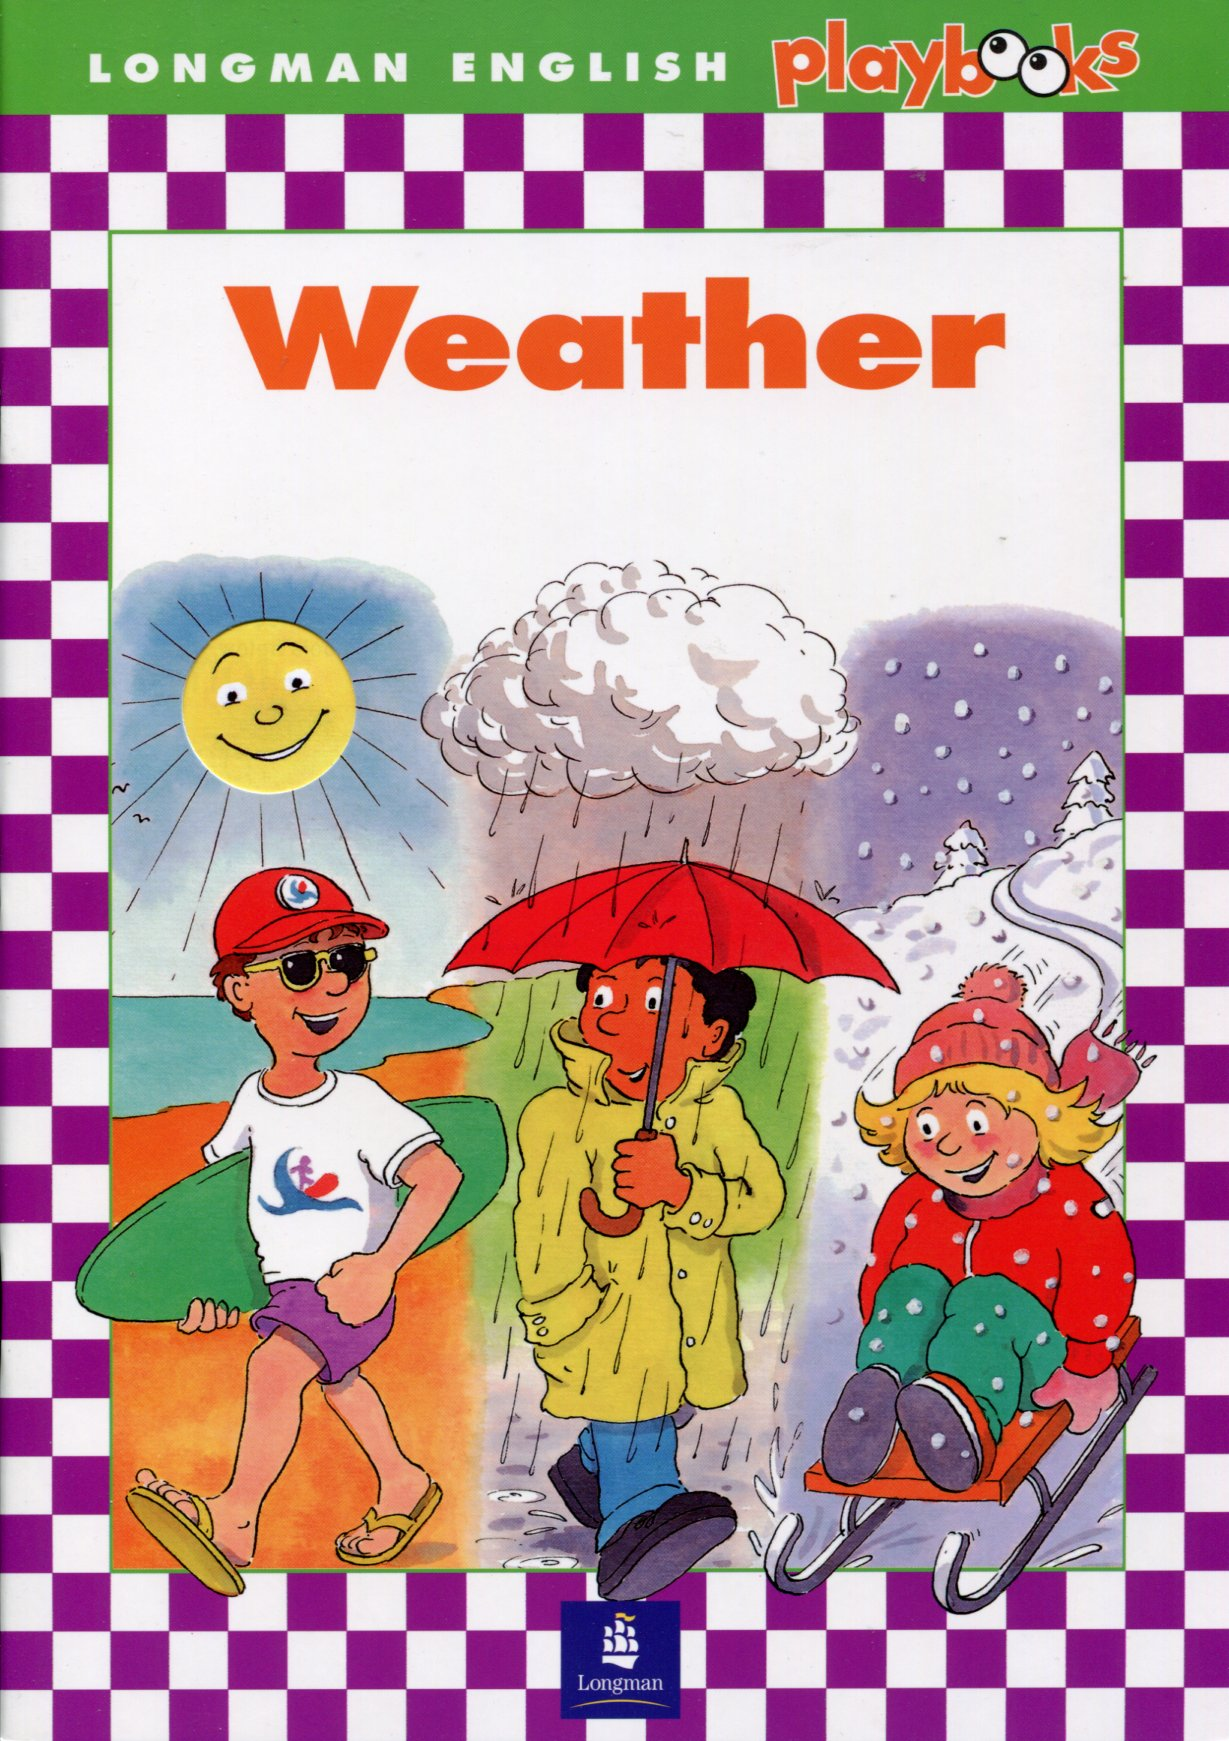 Longman English Playbooks: Weather